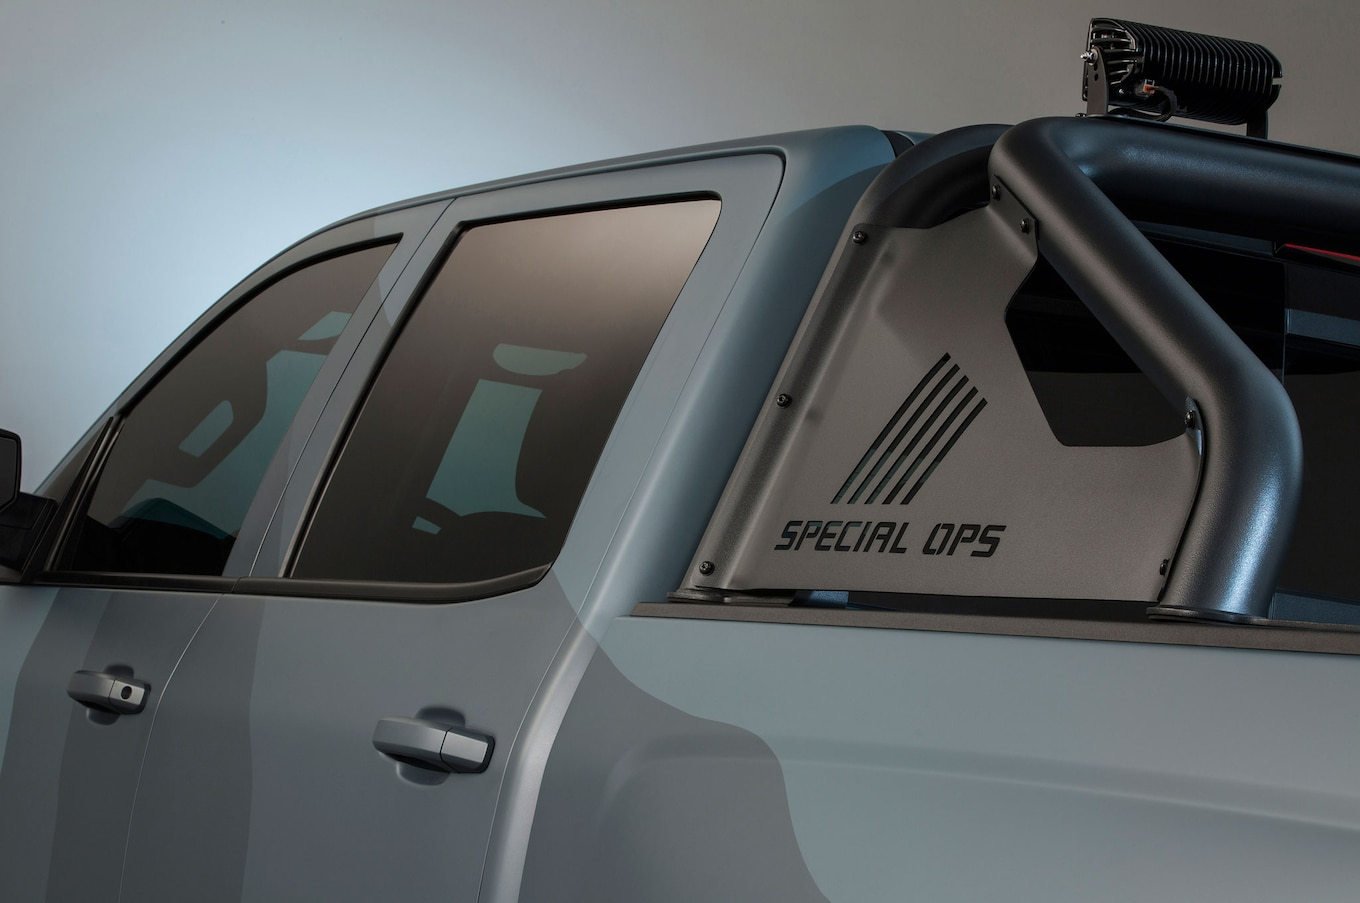 Chevrolet Silverado Special Ops Edition Entering Limited